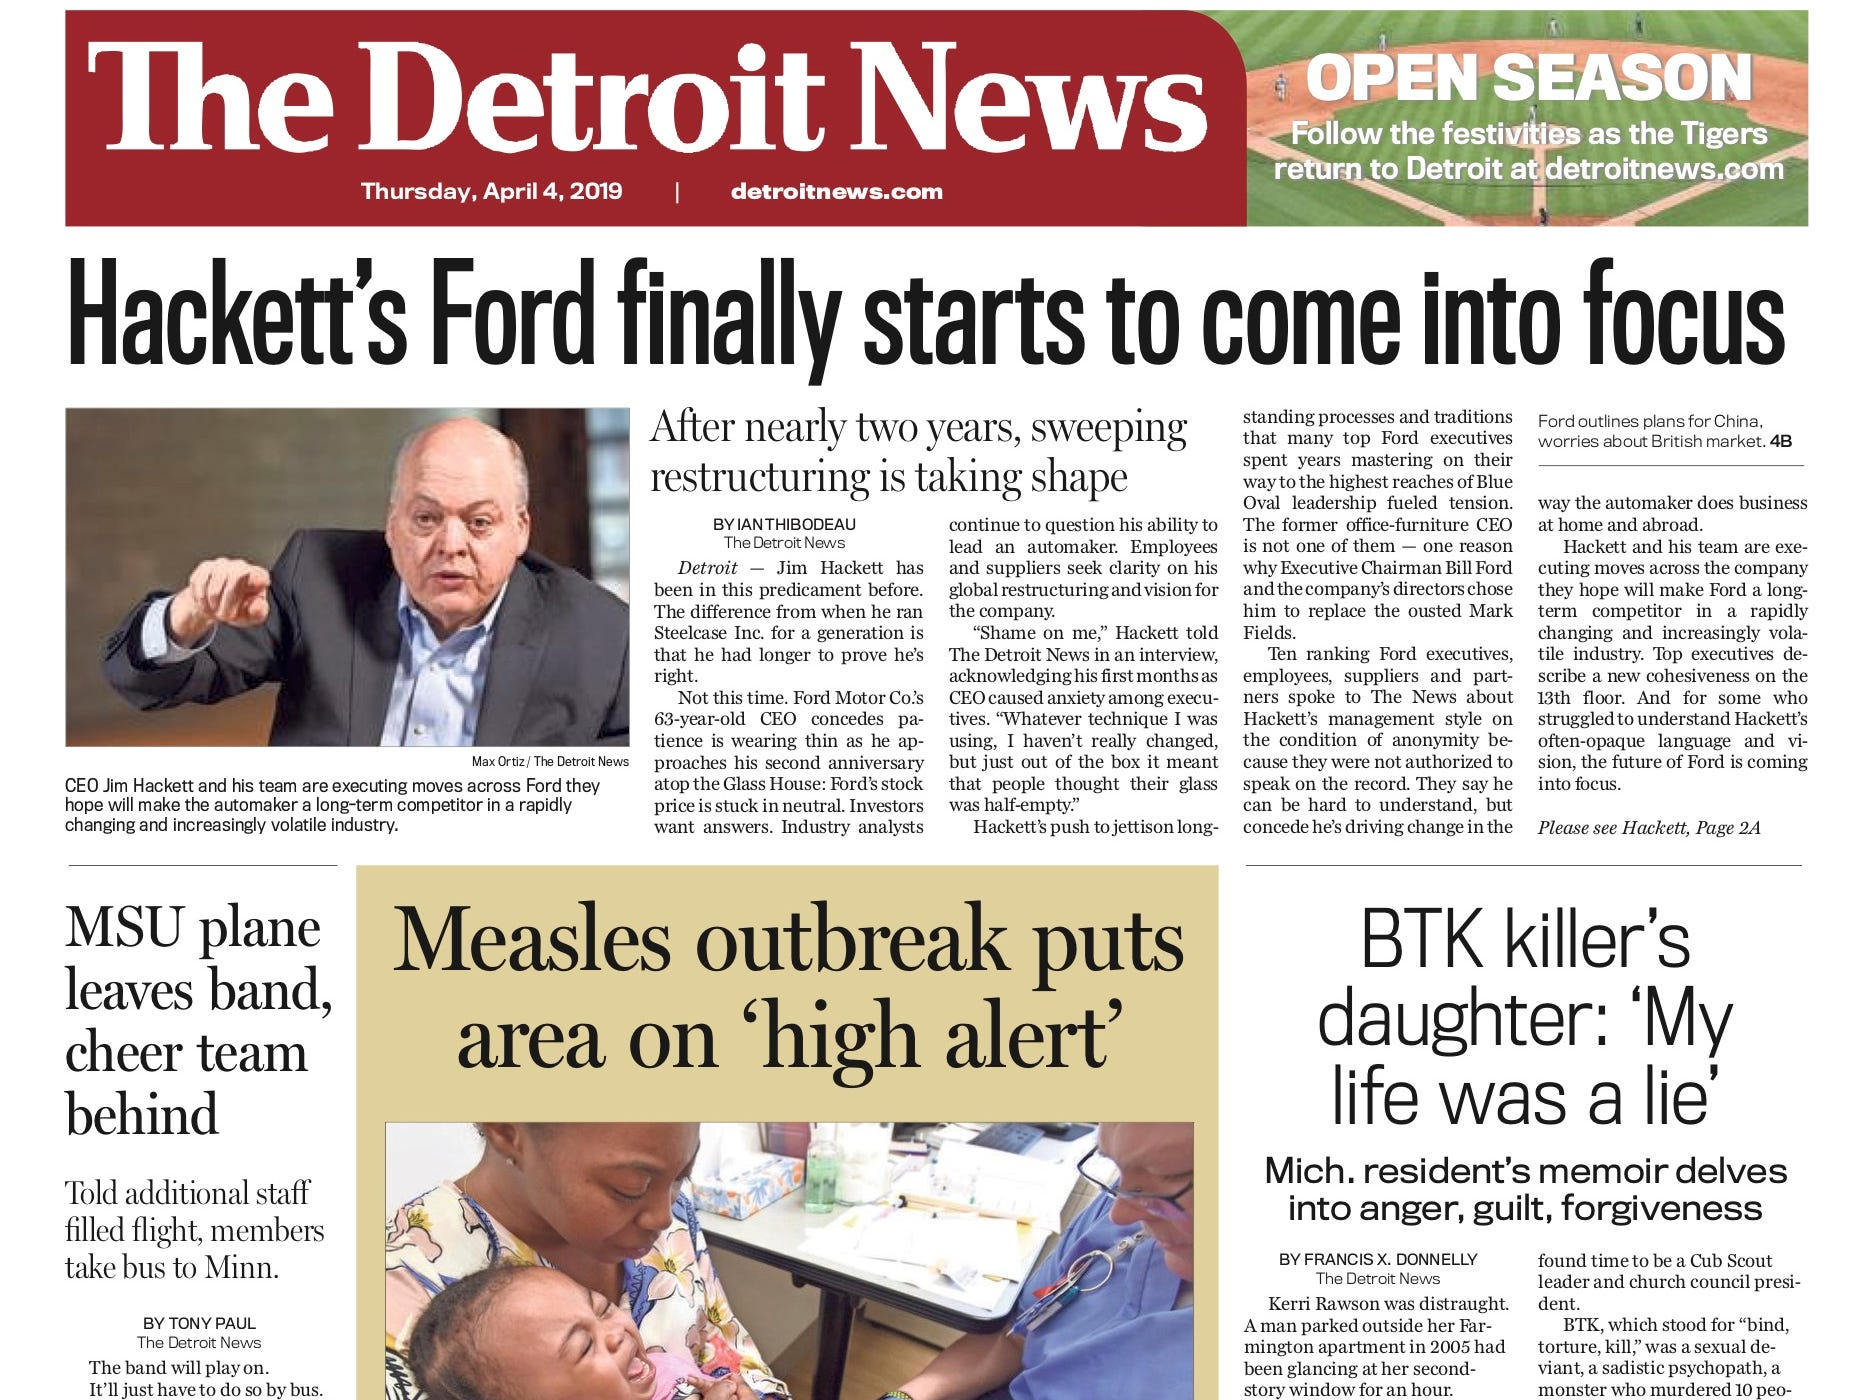 The front page of the Detroit News on April 3, 2019.